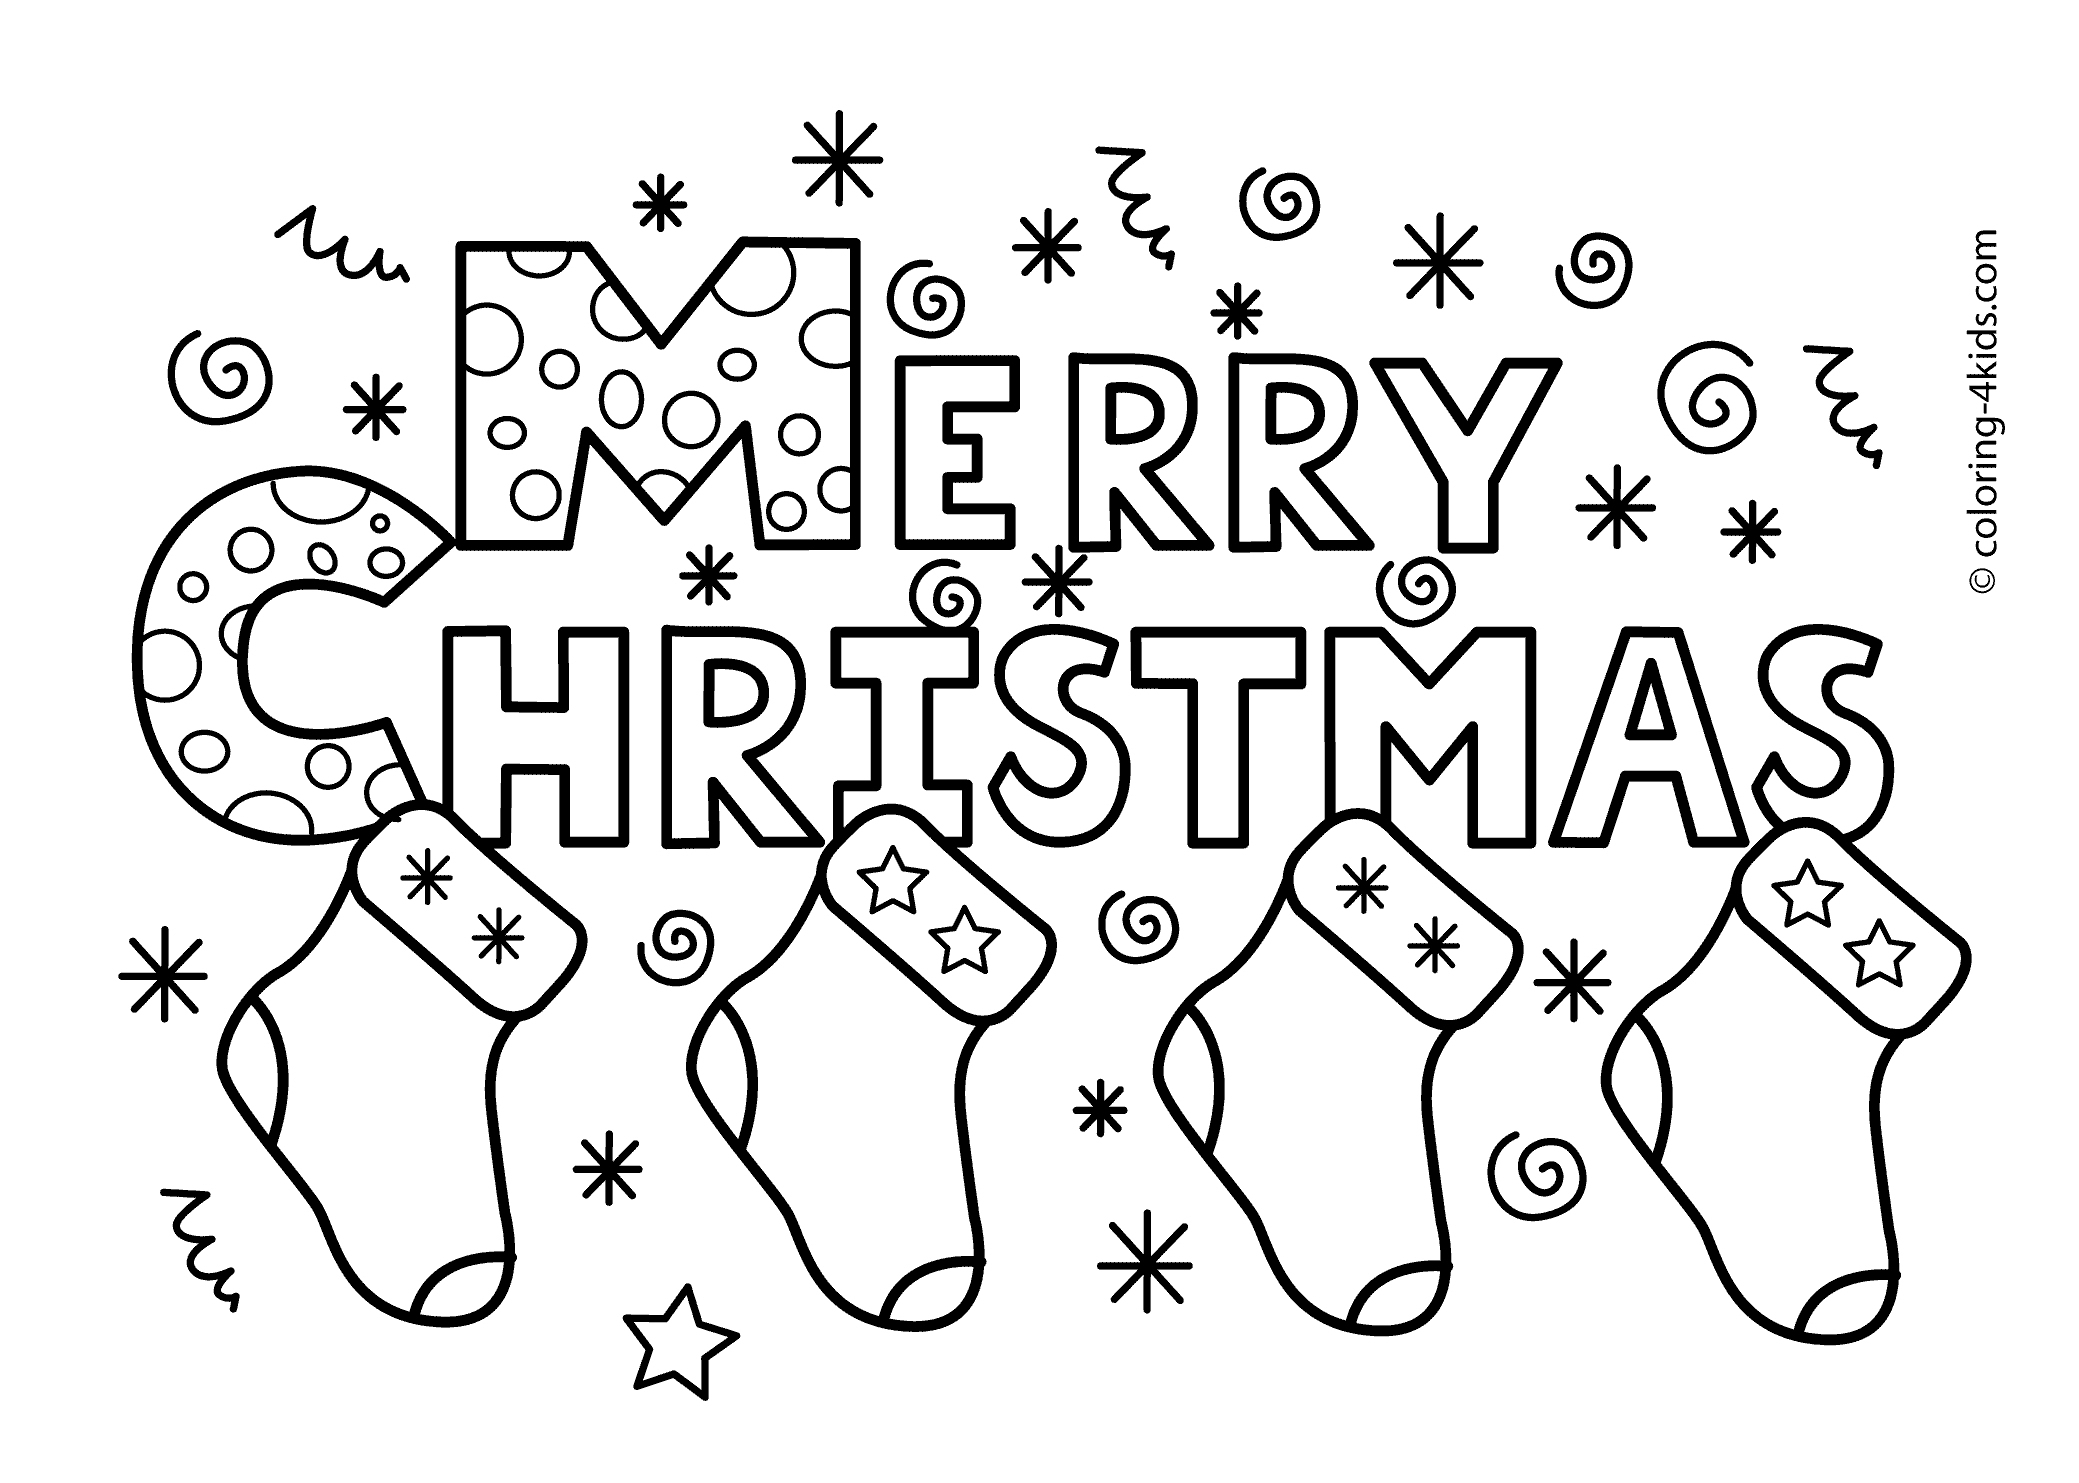 Coloring Pages For Christmas Free Printable - Saglik - Xmas Coloring Pages Free Printable